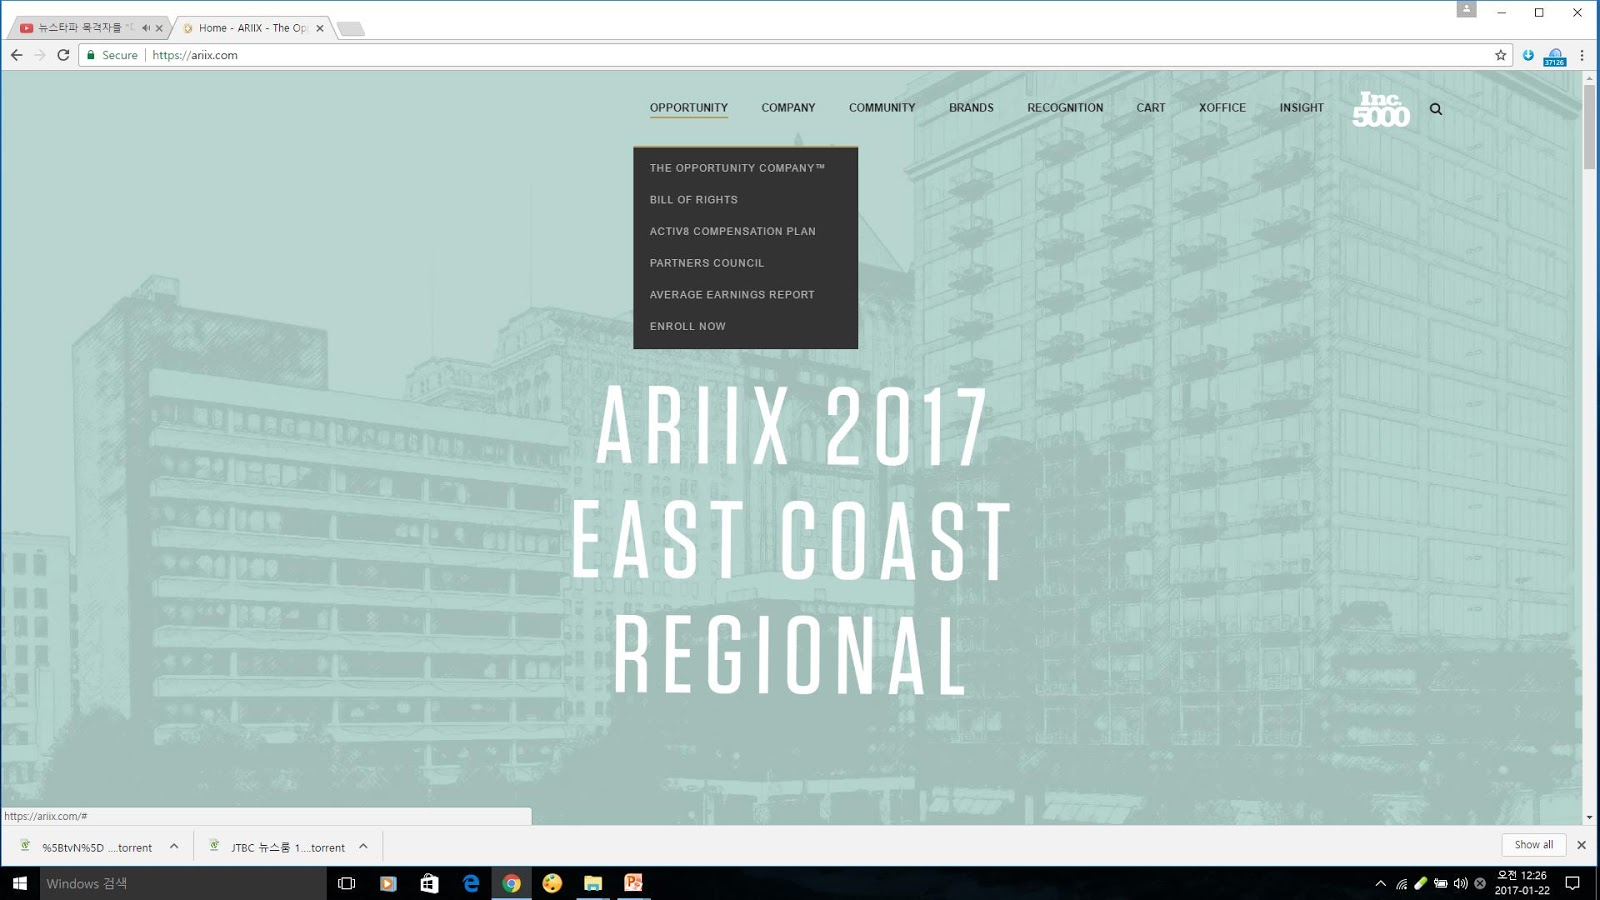 How to order Ariix products